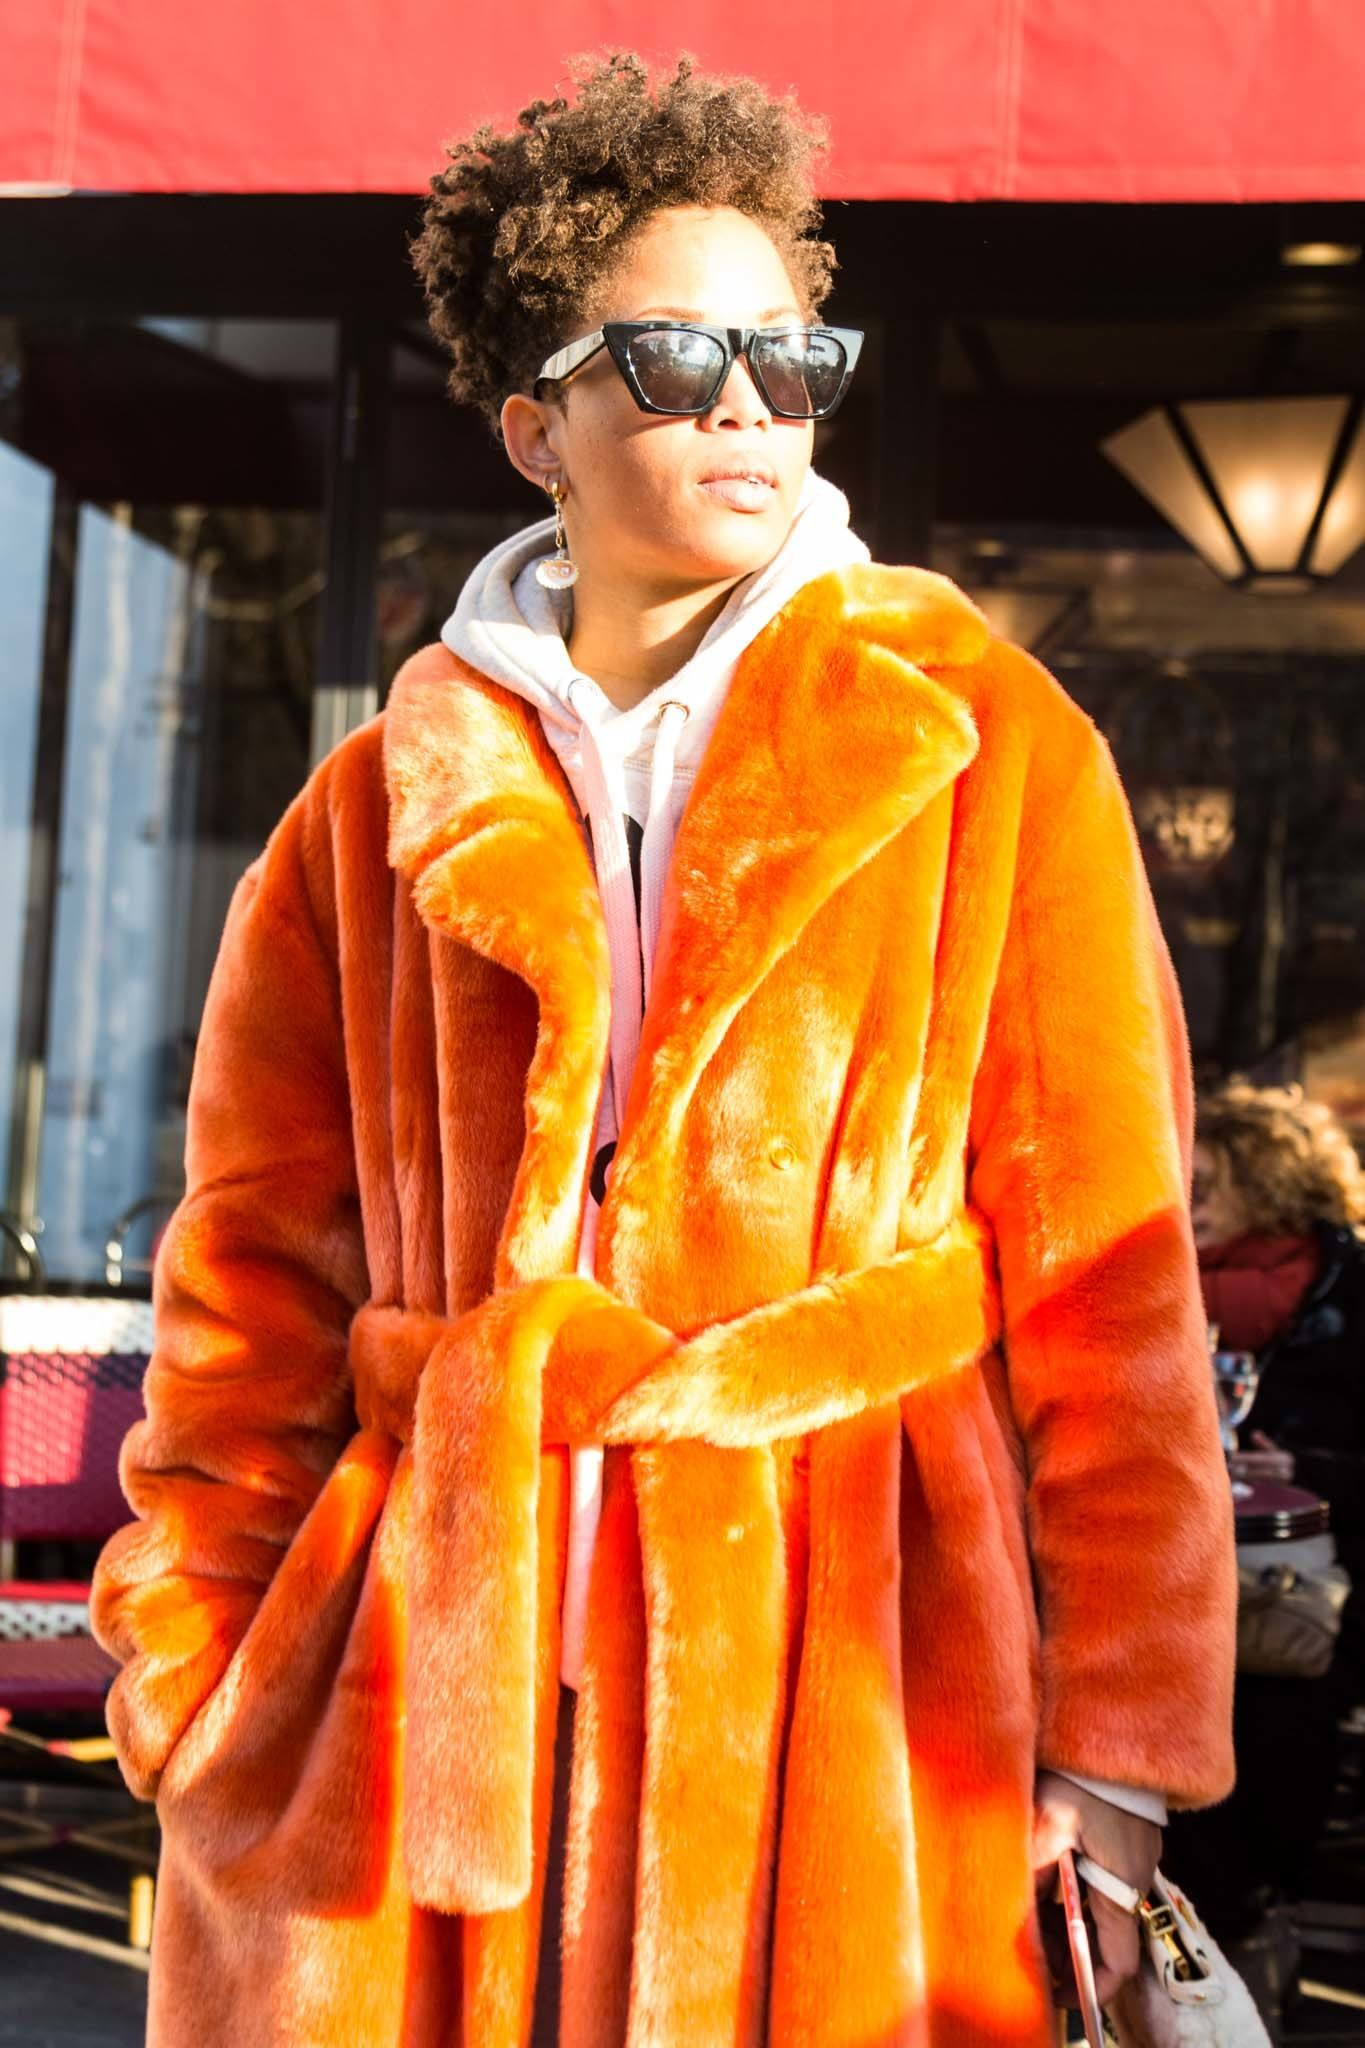 teddy coat and hairstyle pairings: tapered cut